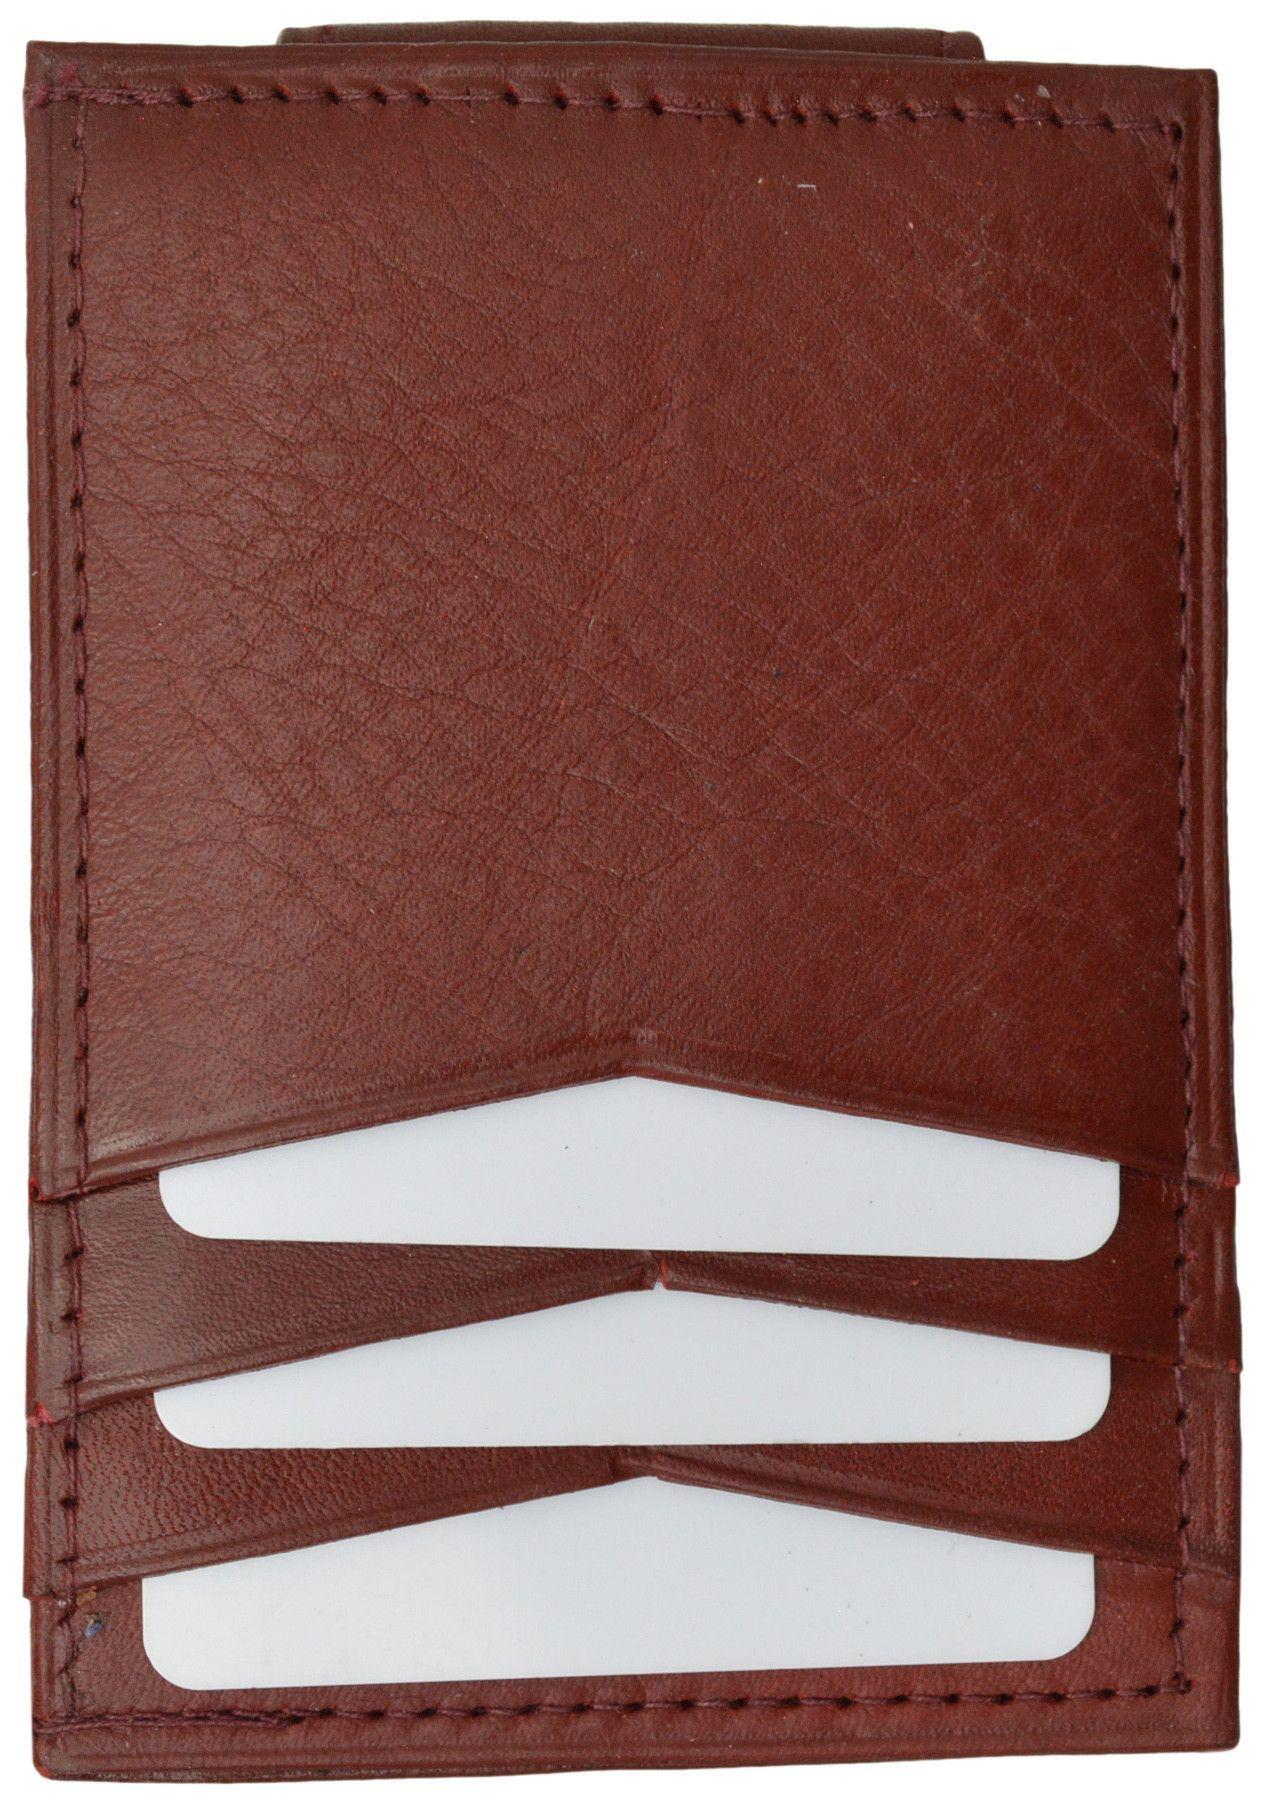 Mens Genuine Leather Money Clip Credit Card Holder Wallet Multiple Colors 1010R (C)